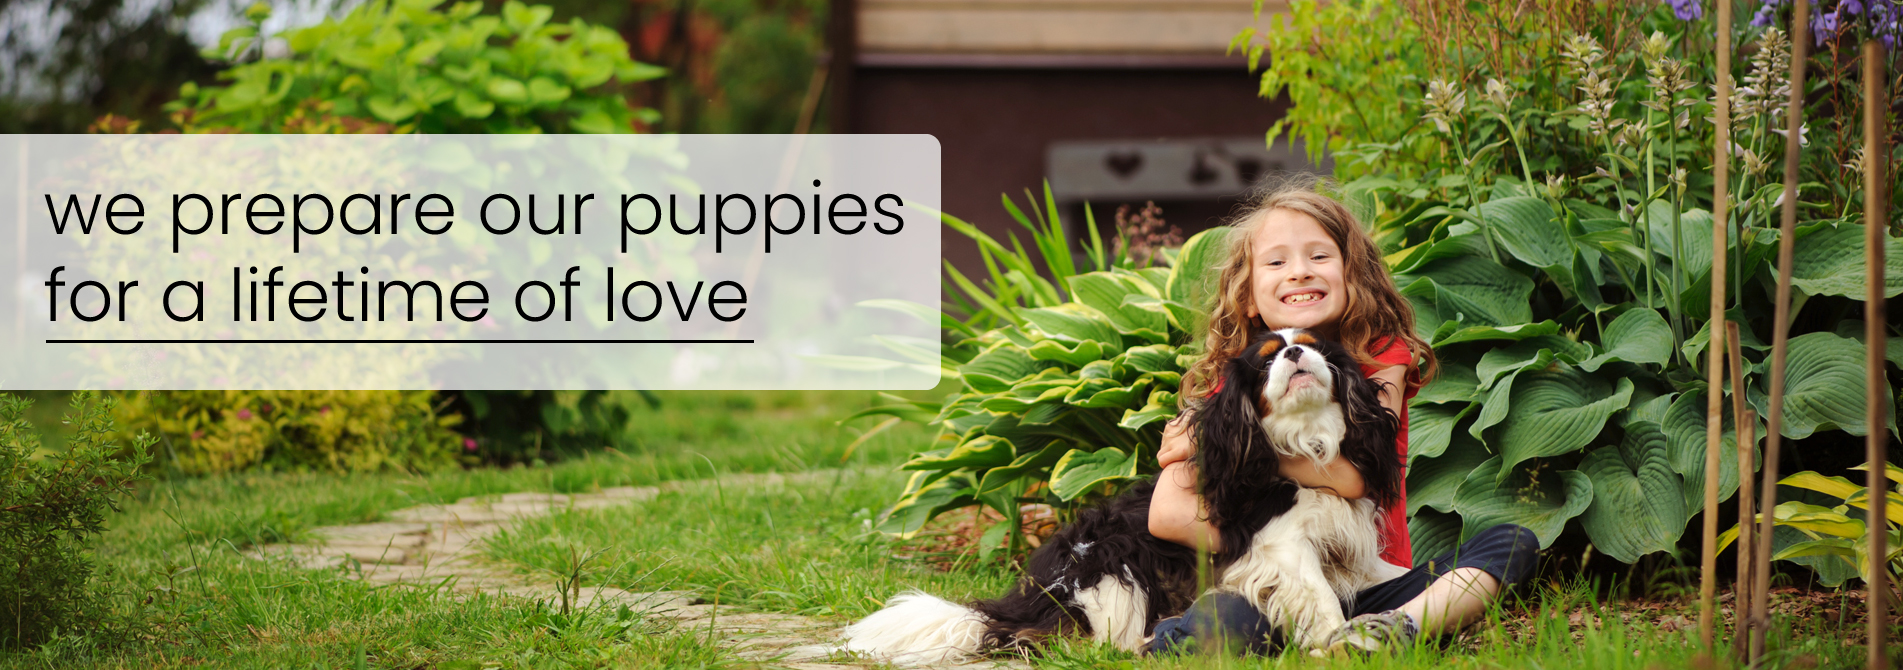 We prepare our puppies for a lifetime of love